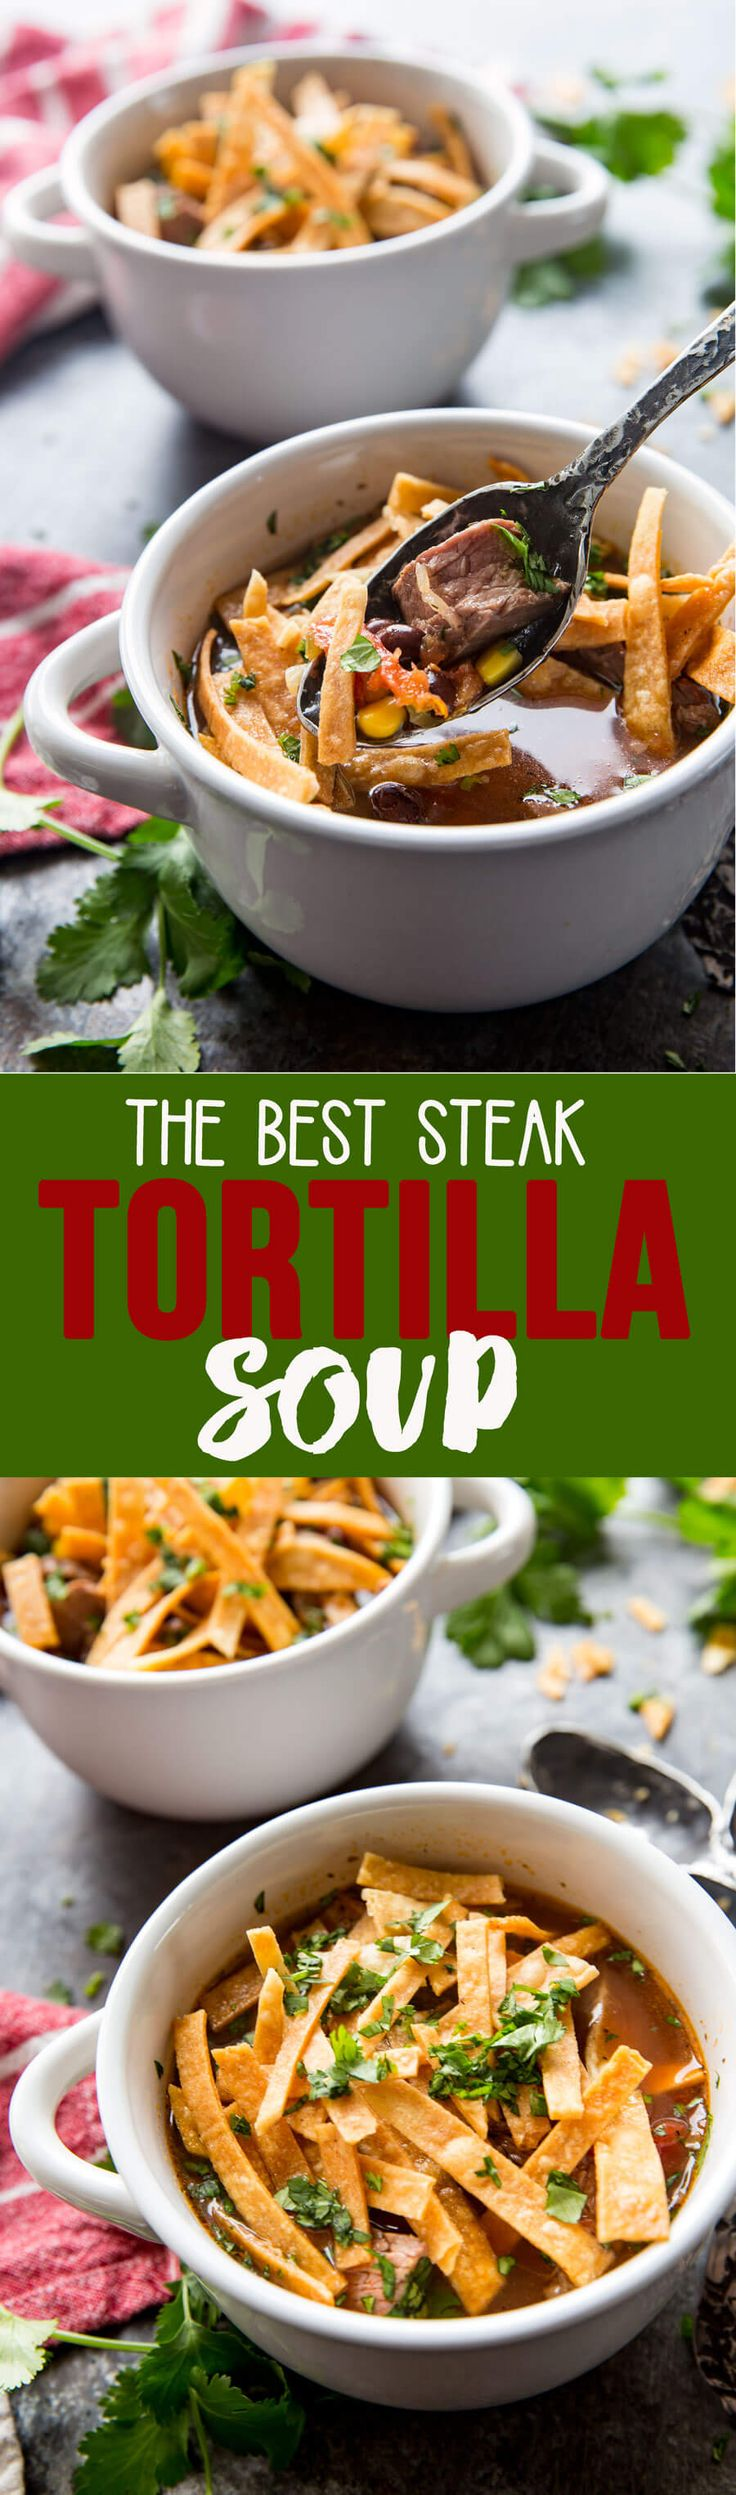 #ad Steak Tortilla Soup is the best! This broth is super flavorful,and the soup ridiculously easy to make! Yum! #CarpeDinner #PEPCID @PEPCID